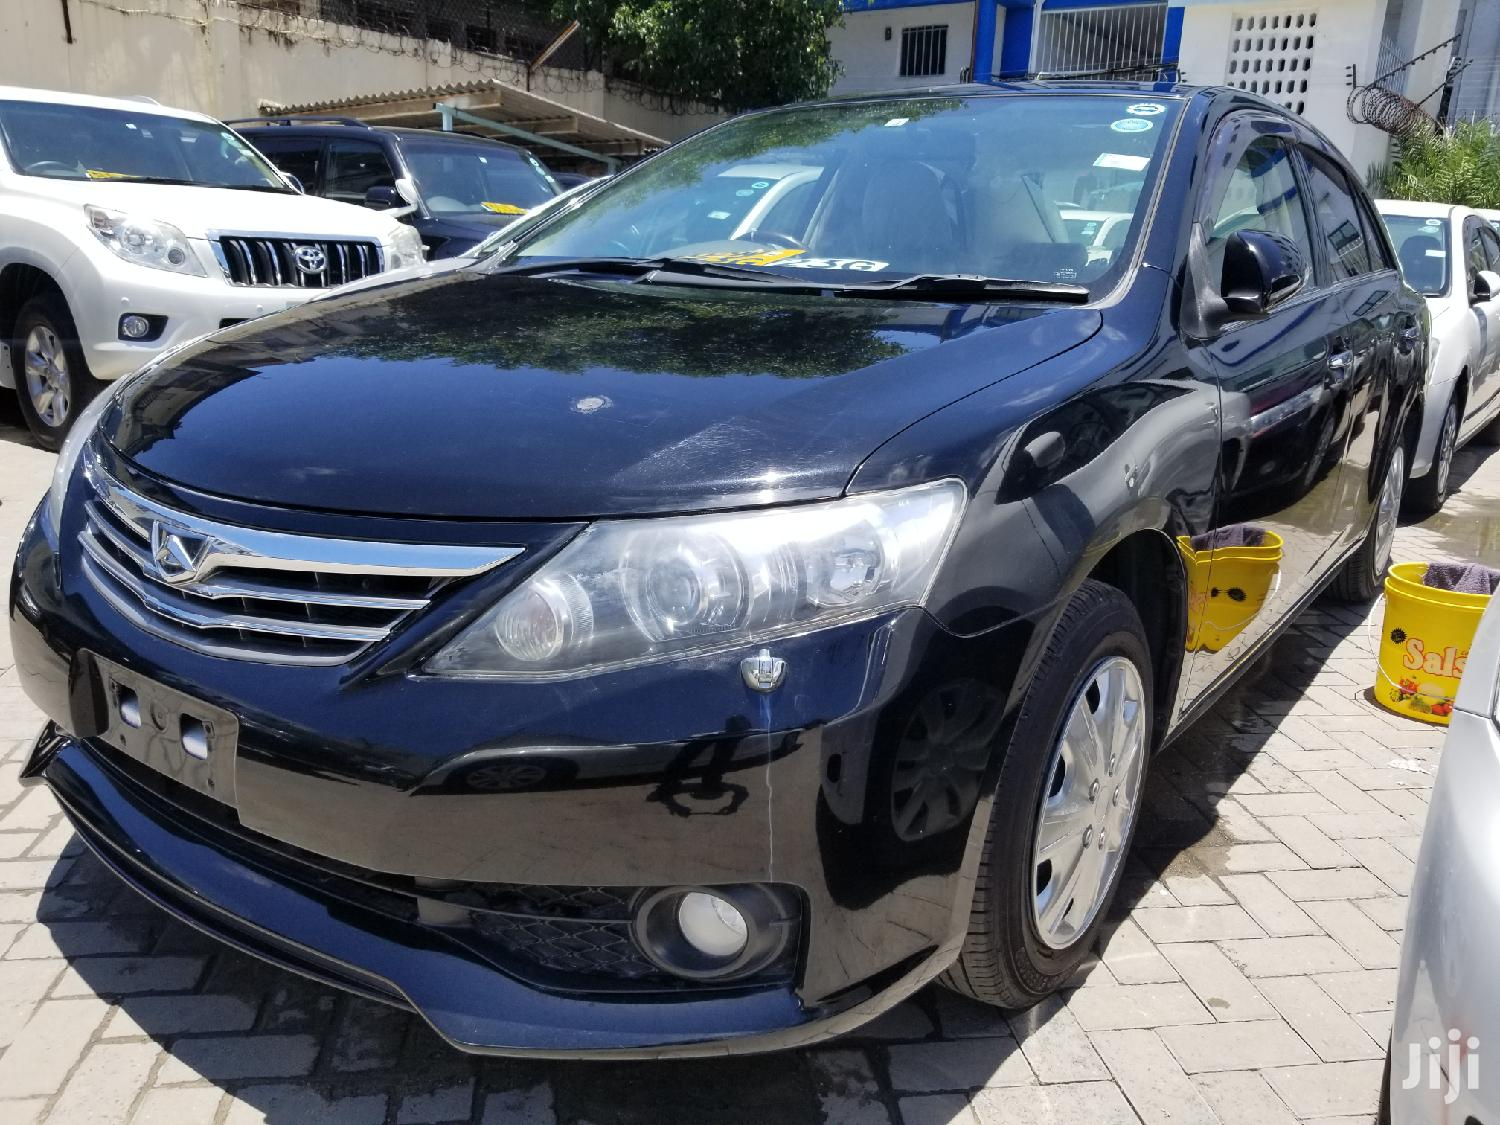 Toyota Allion 2012 Black | Cars for sale in Tononoka, Mombasa, Kenya